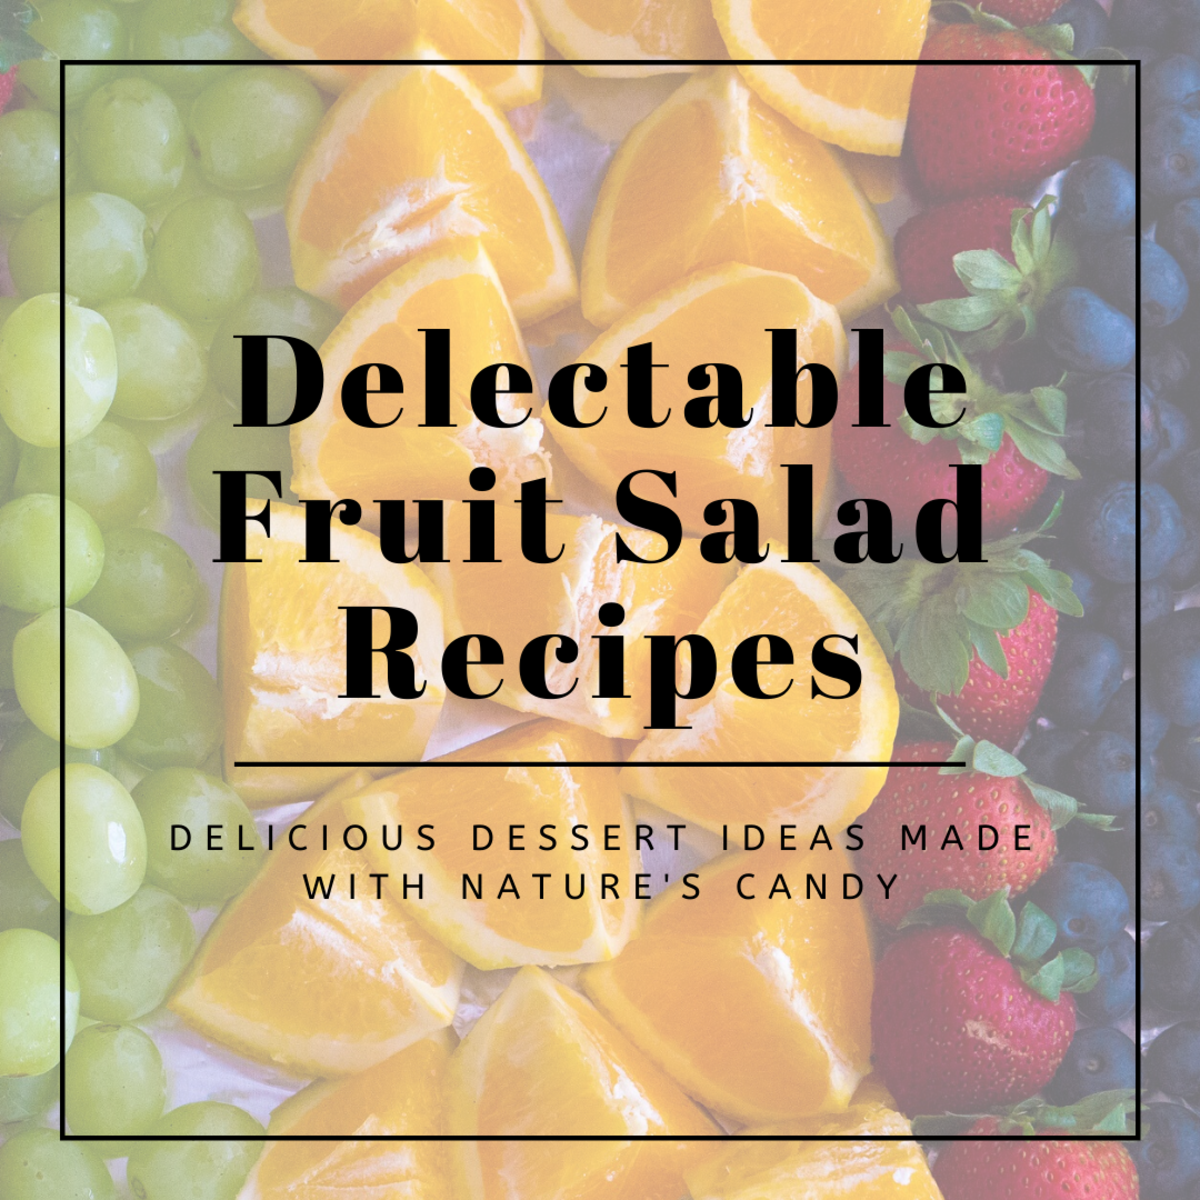 This article will share four different delectable fruit salad recipes that can be eaten as dessert after meals.